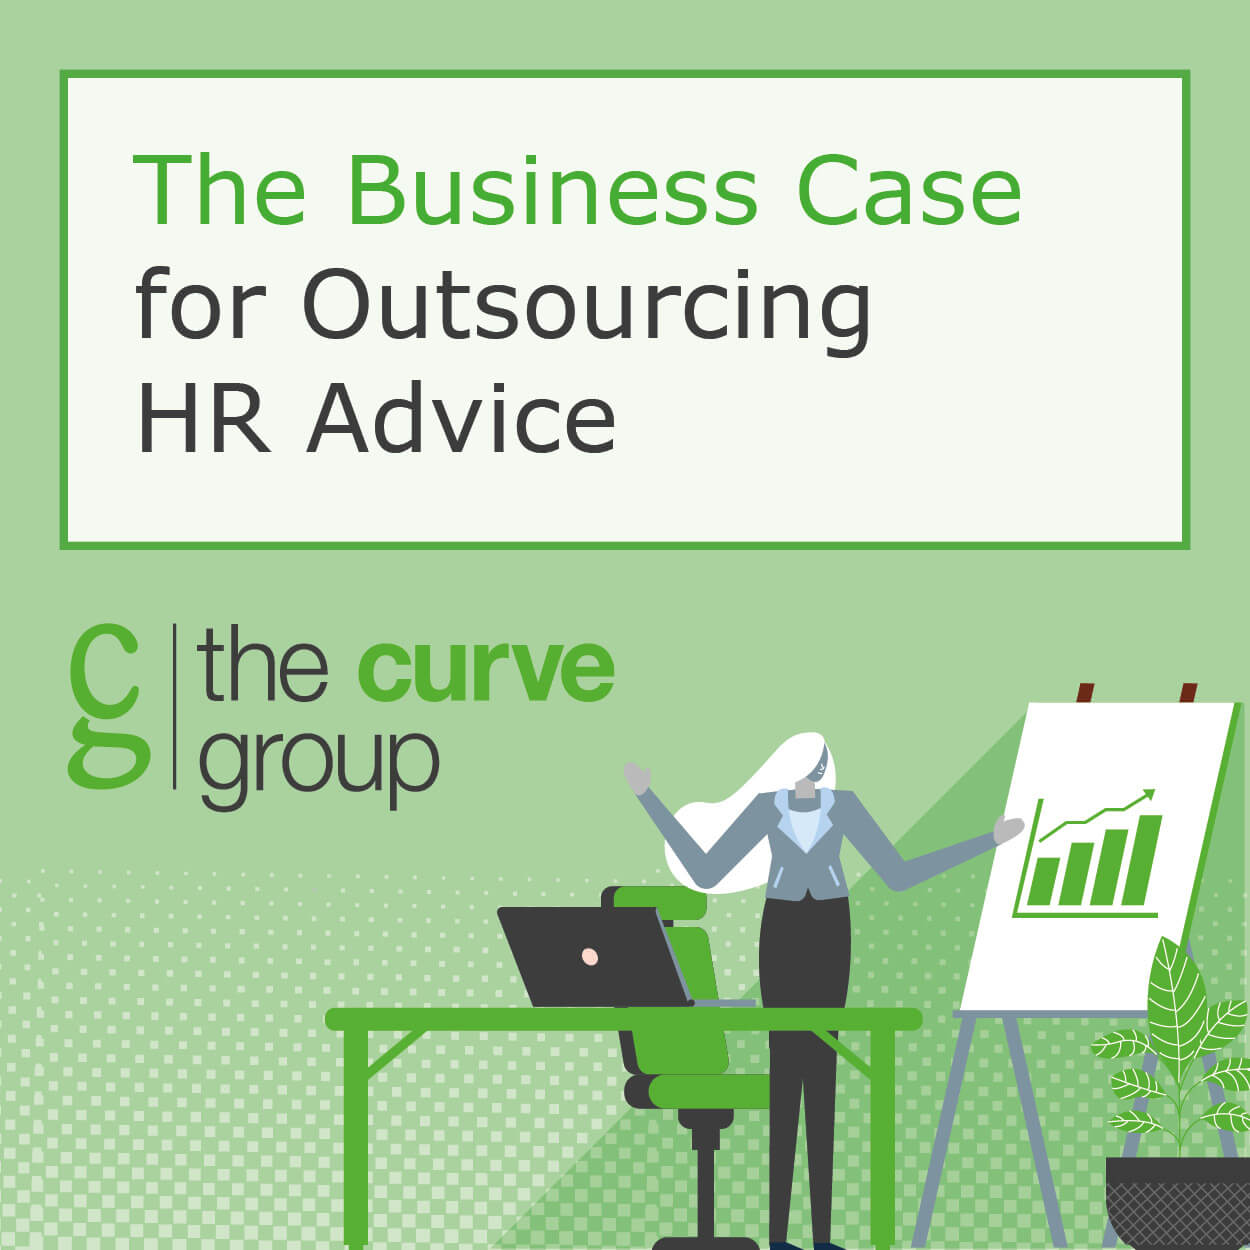 Business Case for Outsourcing HR Advice website teaser 300px x 300px